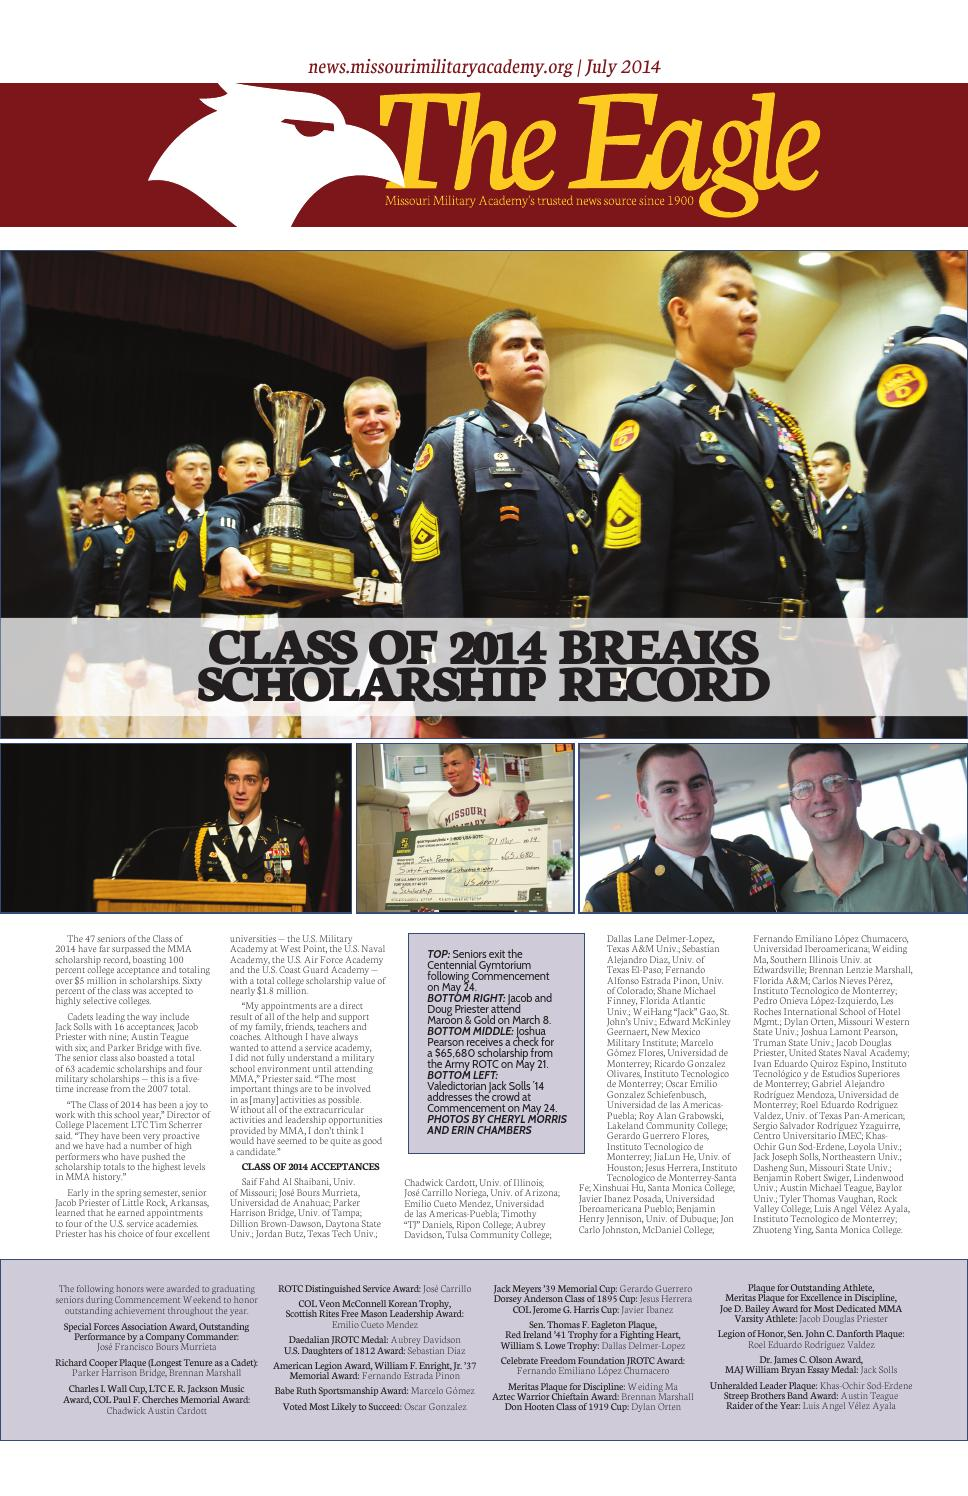 The Mma Eagle Spring 2014 Edition By Missouri Military Academy Issuu